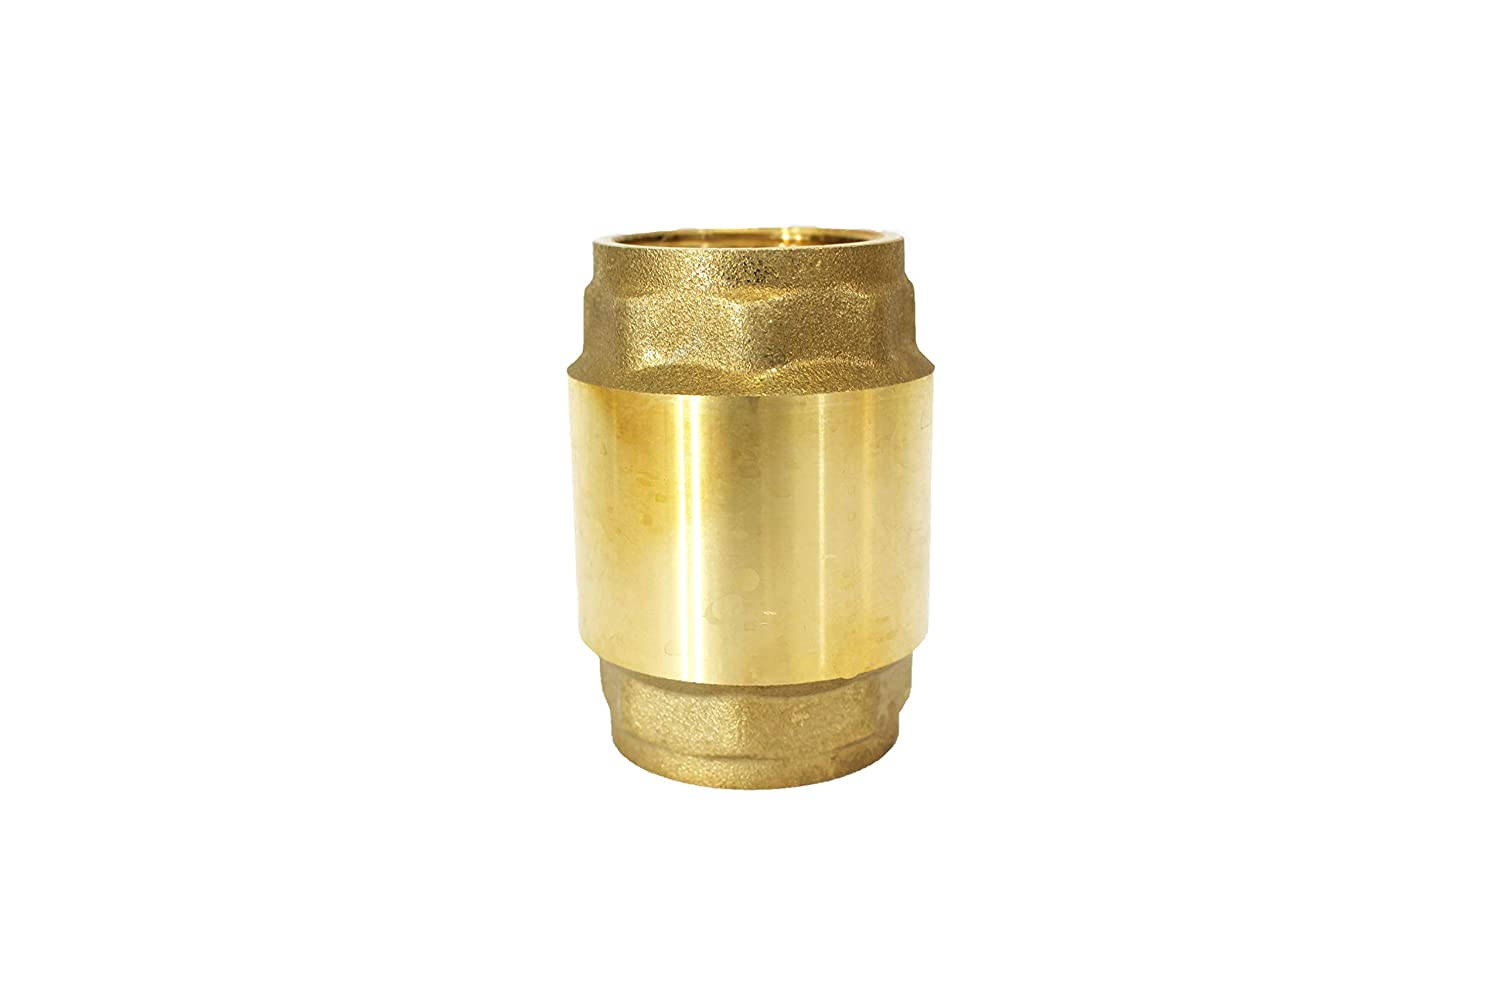 FNPT,200 WOG,Lead Free,Backflow Preventer,for Tankless Water Heater,Pressure Pumps,Boilers,and HVAC Systems 3//4 inch CMI Inc 3//4 Inch Brass Spring Check Valve,3//4 in X 3//4 in